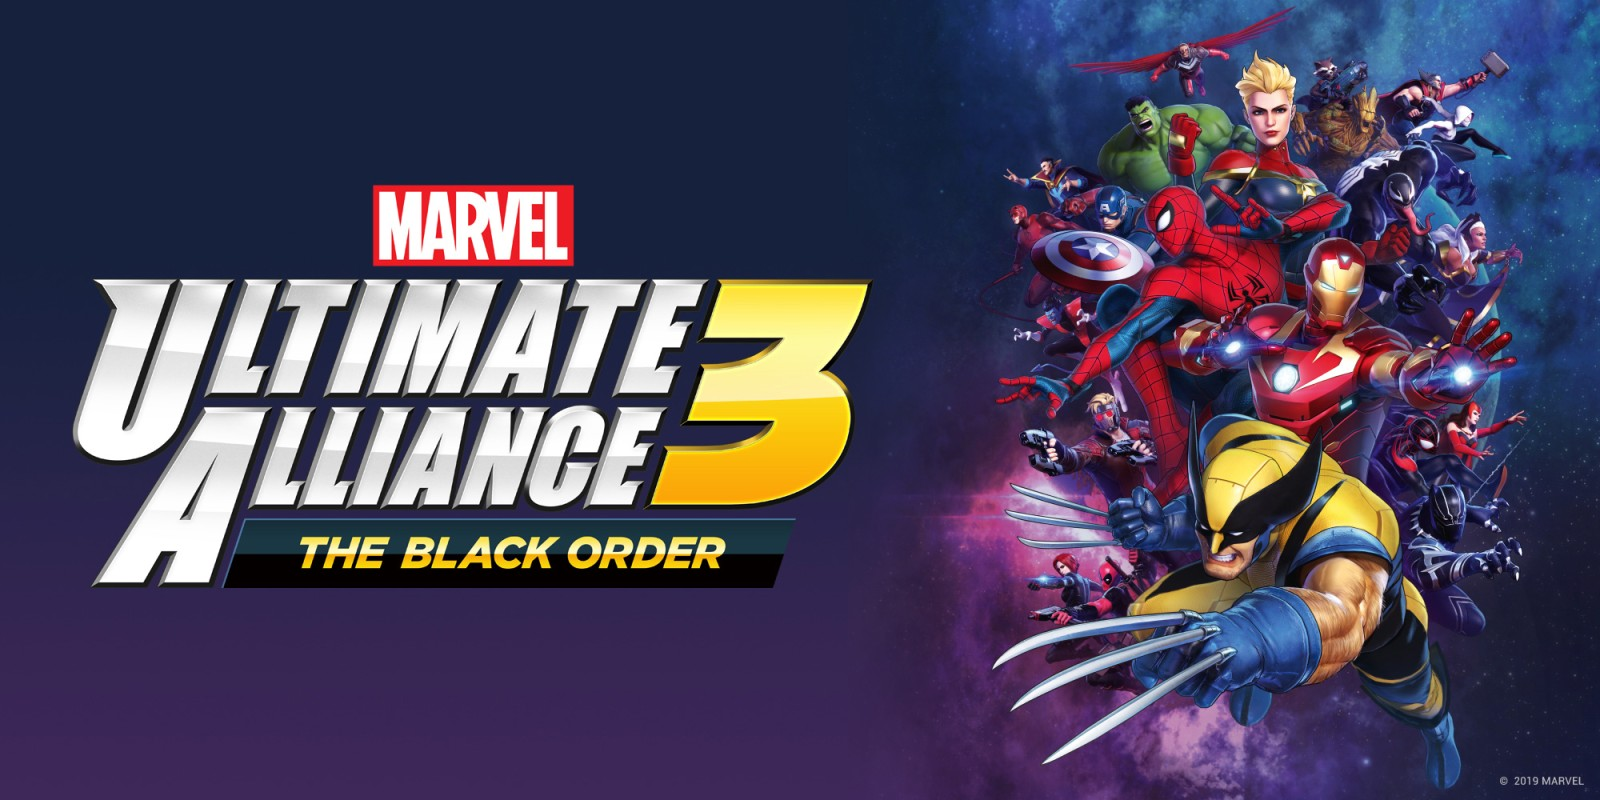 https://cdn03.nintendo-europe.com/media/images/10_share_images/games_15/nintendo_switch_4/H2x1_NSwitch_MarvelUltimateAlliance3TheBlackOrder_image1600w.jpg